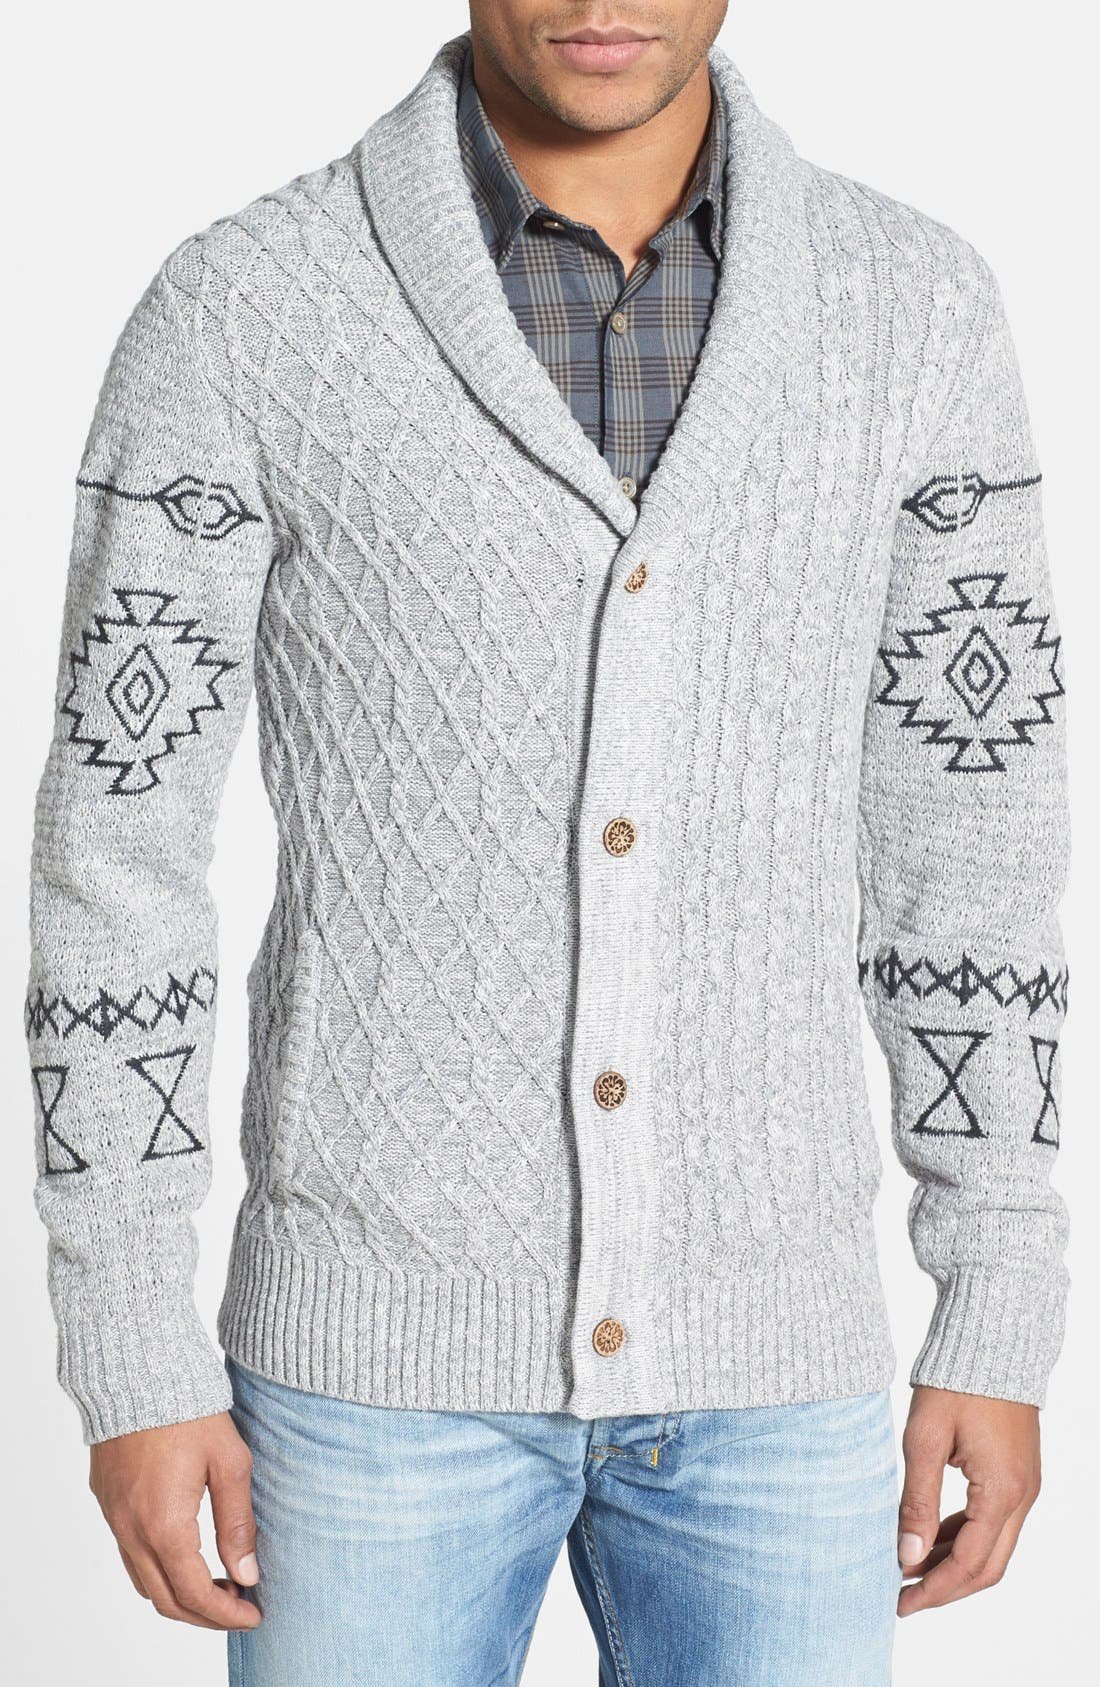 Alternate Image 1 Selected - ZANEROBE 'Sloan' Cable Knit Shawl Cardigan